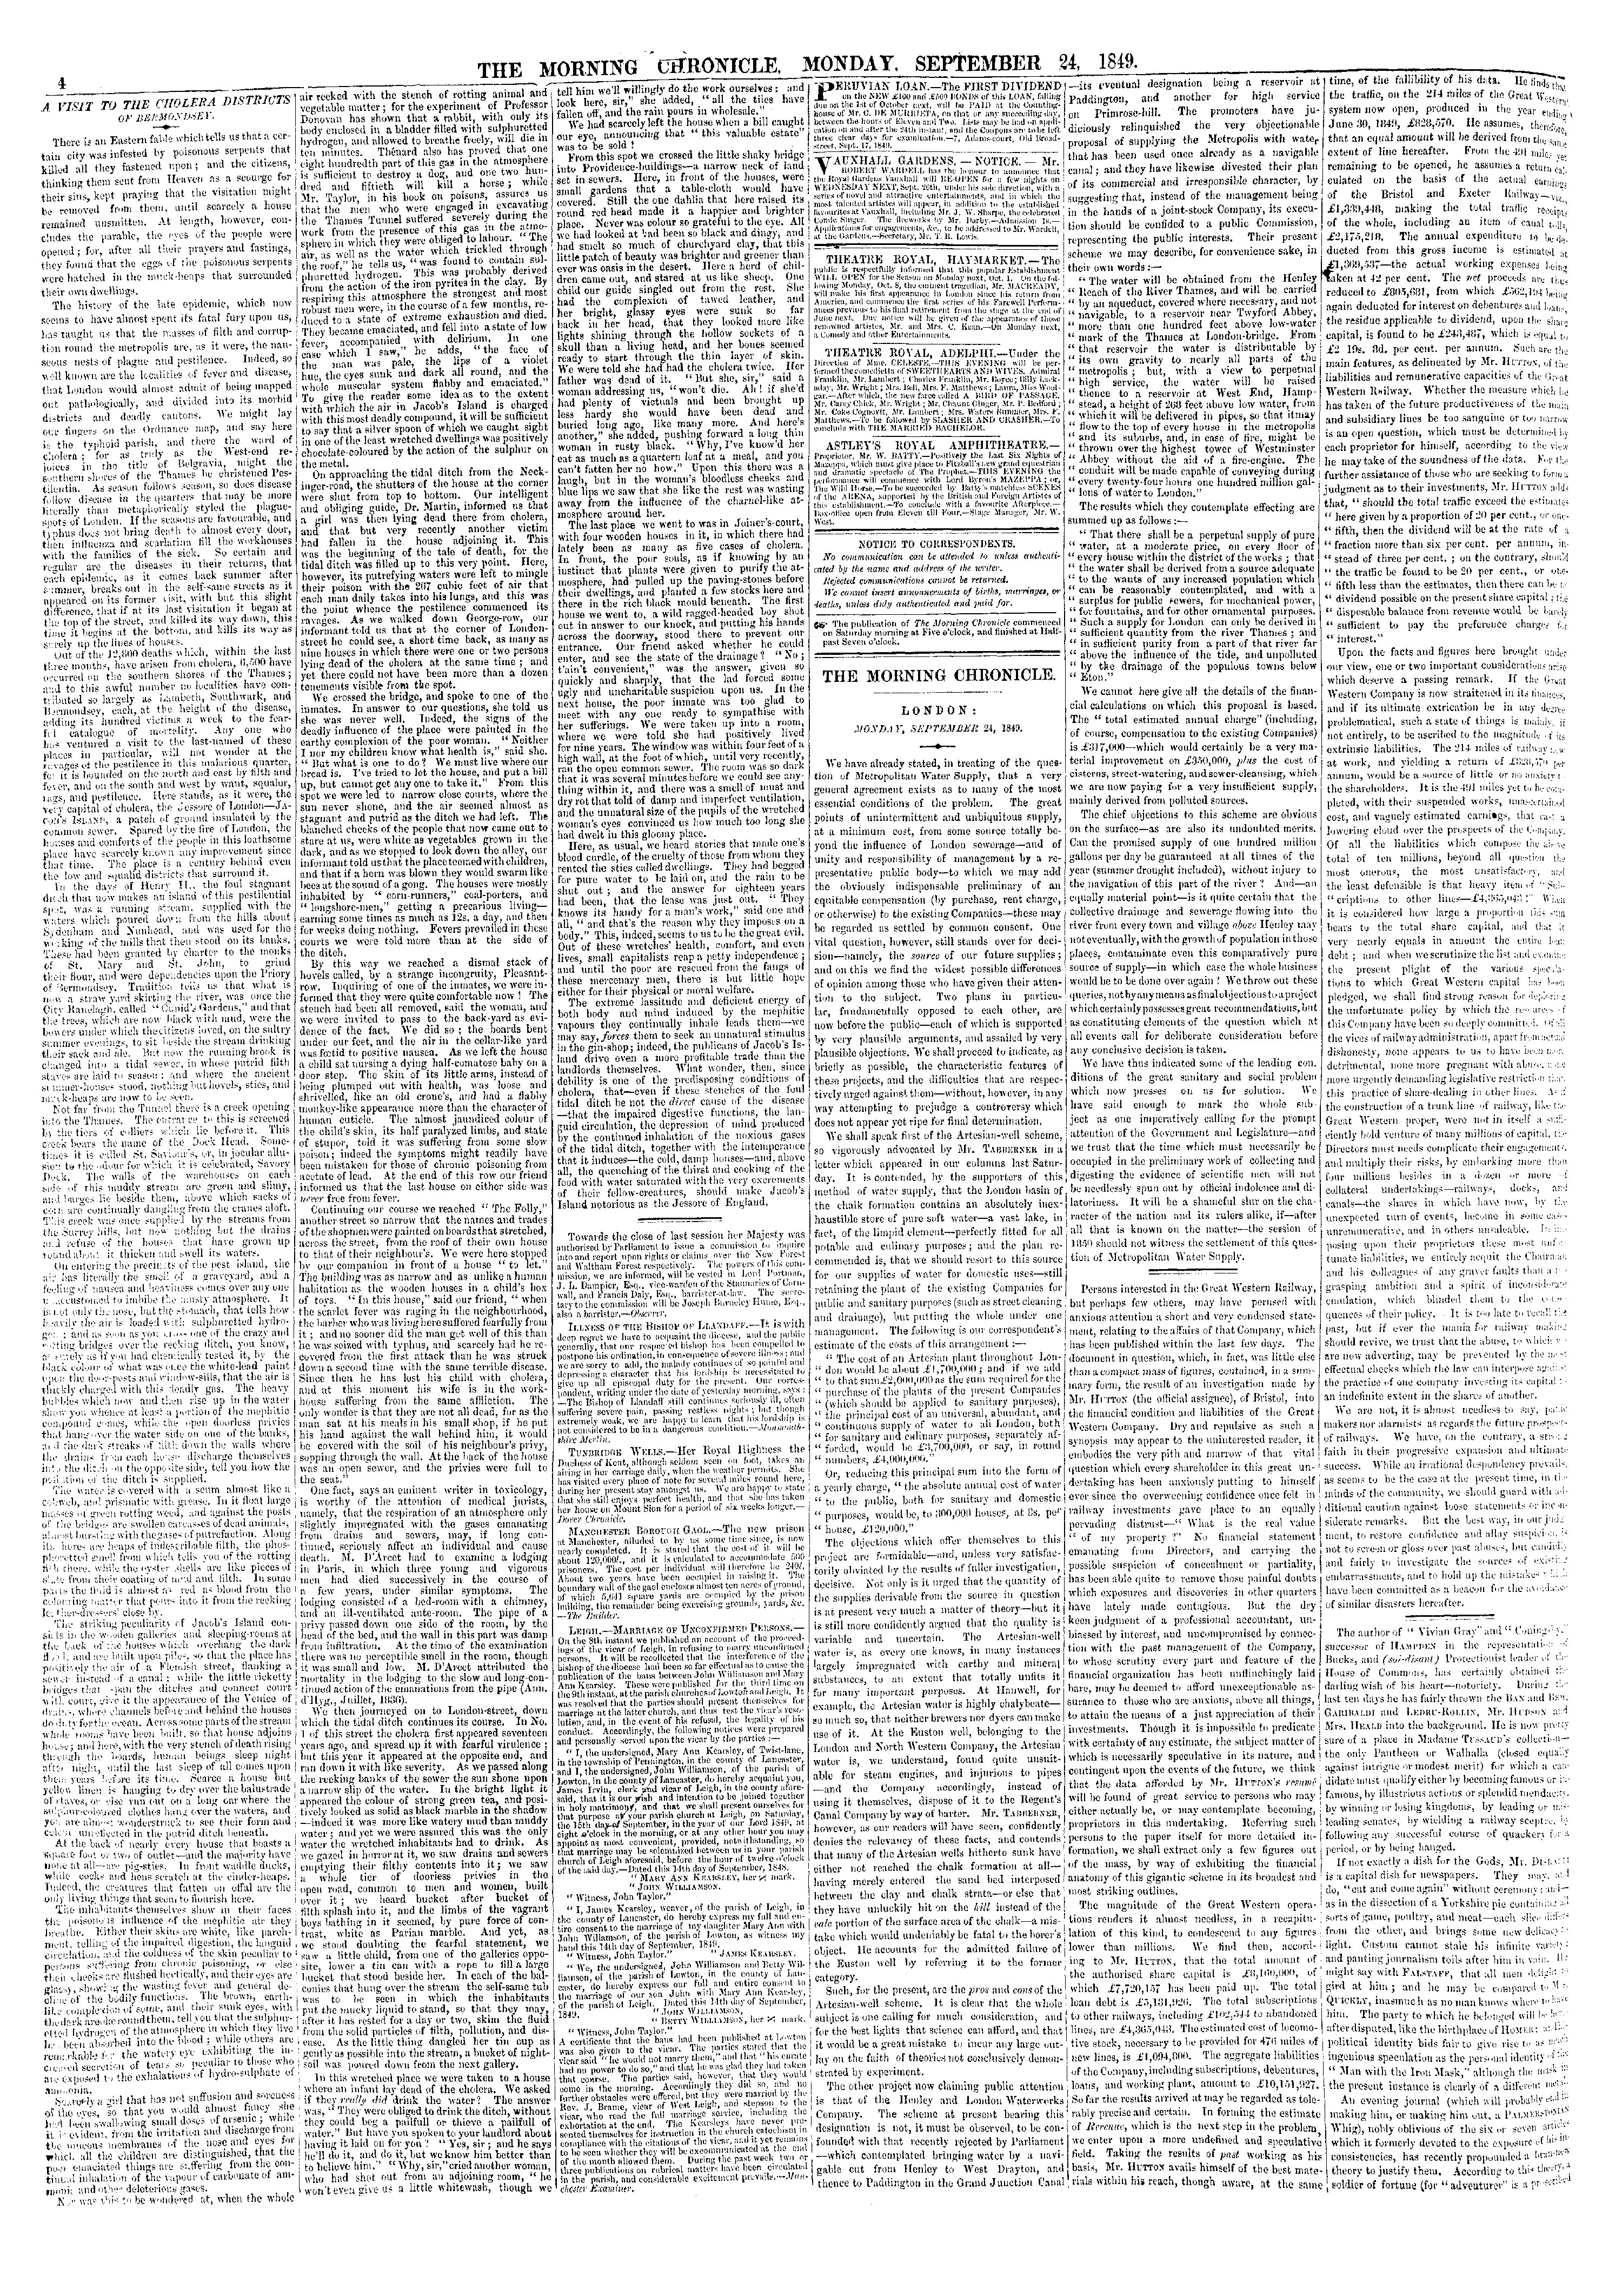 Article by Henry Mayhew on the cholera districts of Bermondsey, London, published in the Morning Chronicle [page: 4]